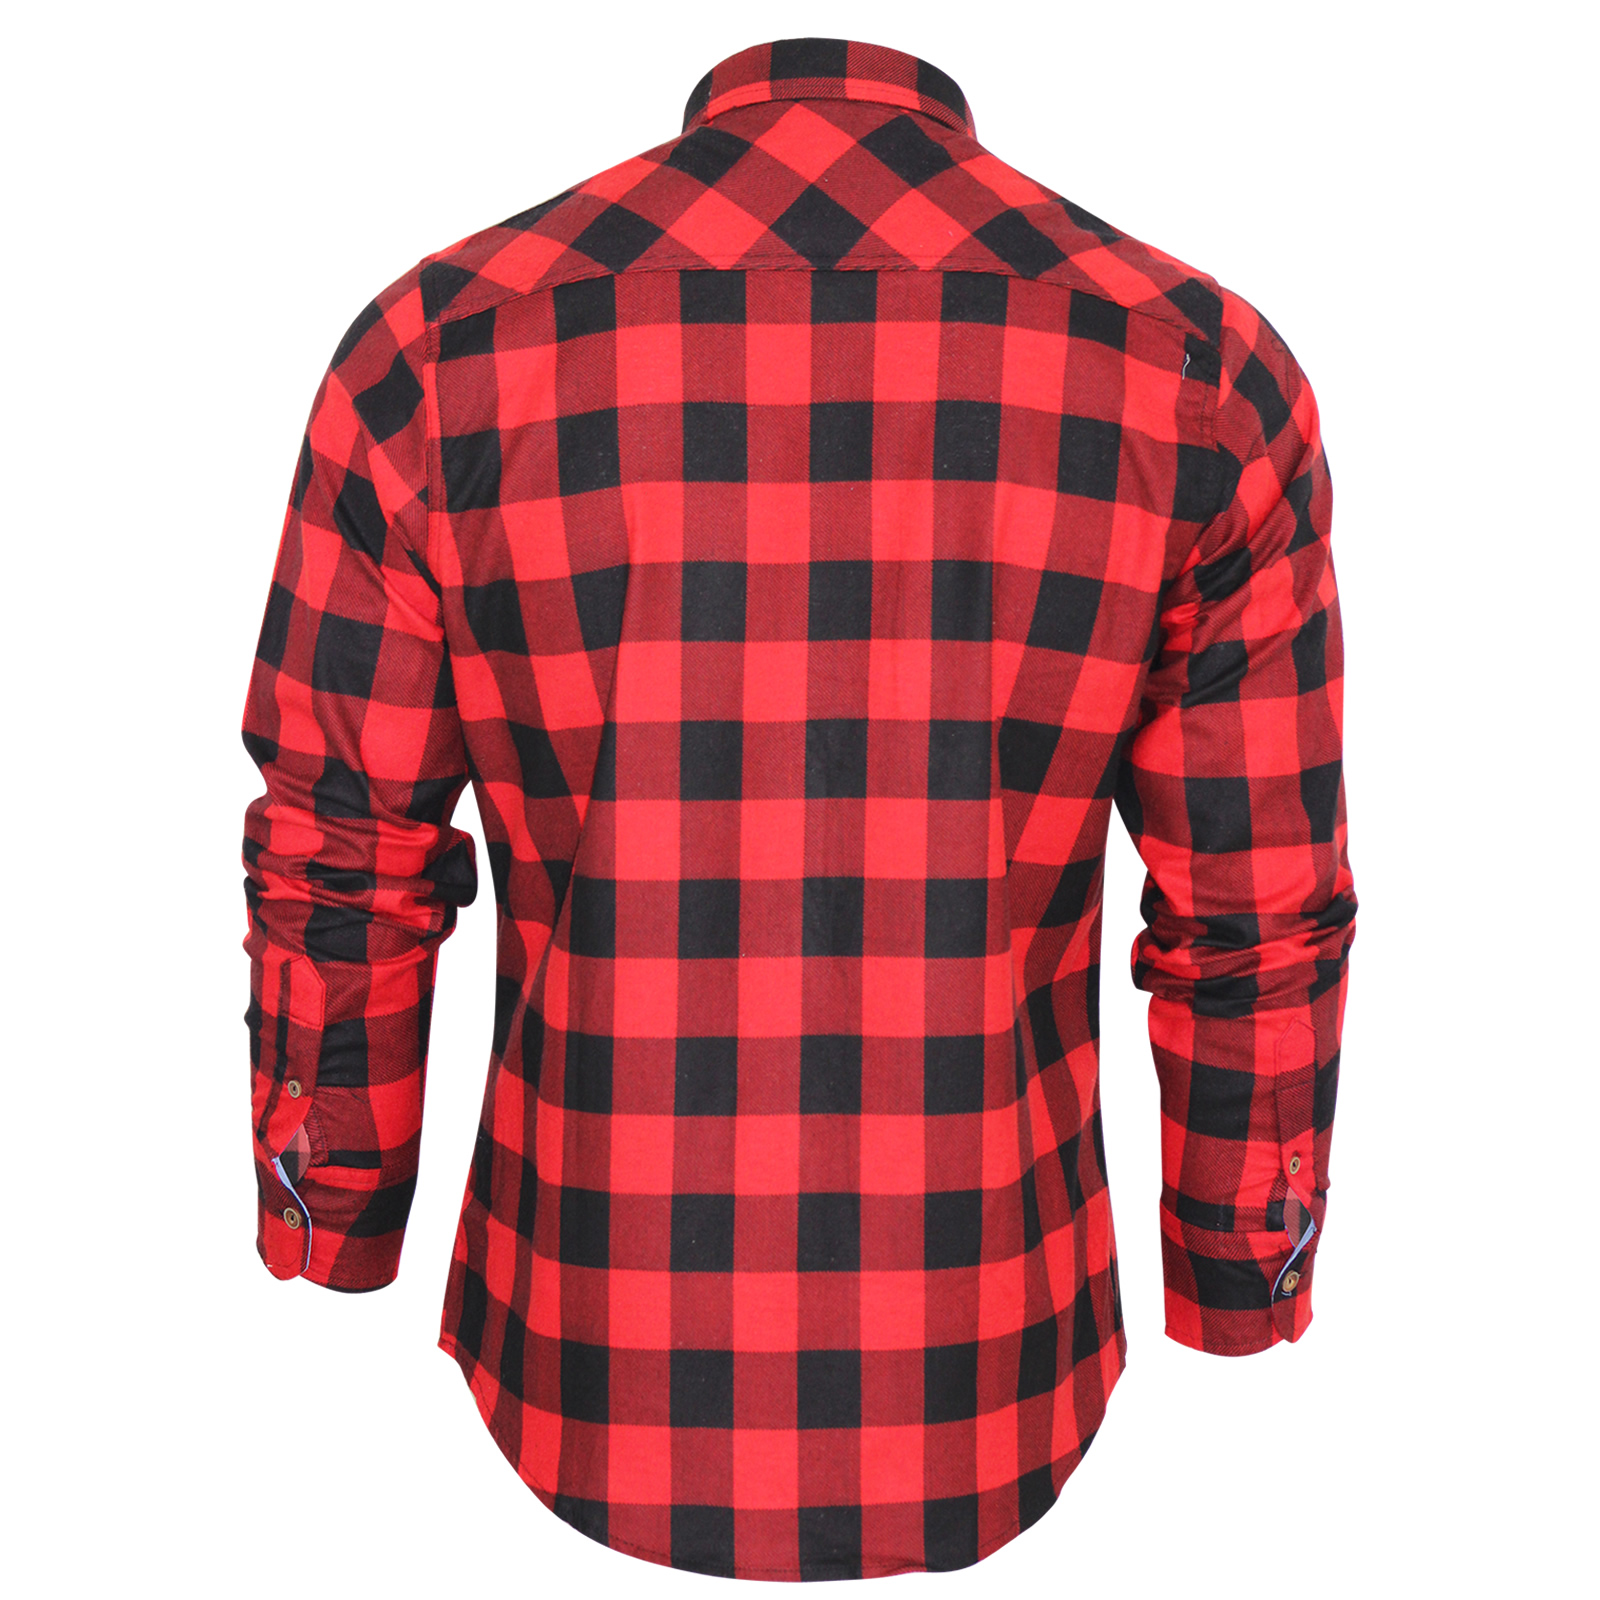 mens check shirt brave soul flannel brushed cotton long sleeve casual top ebay. Black Bedroom Furniture Sets. Home Design Ideas